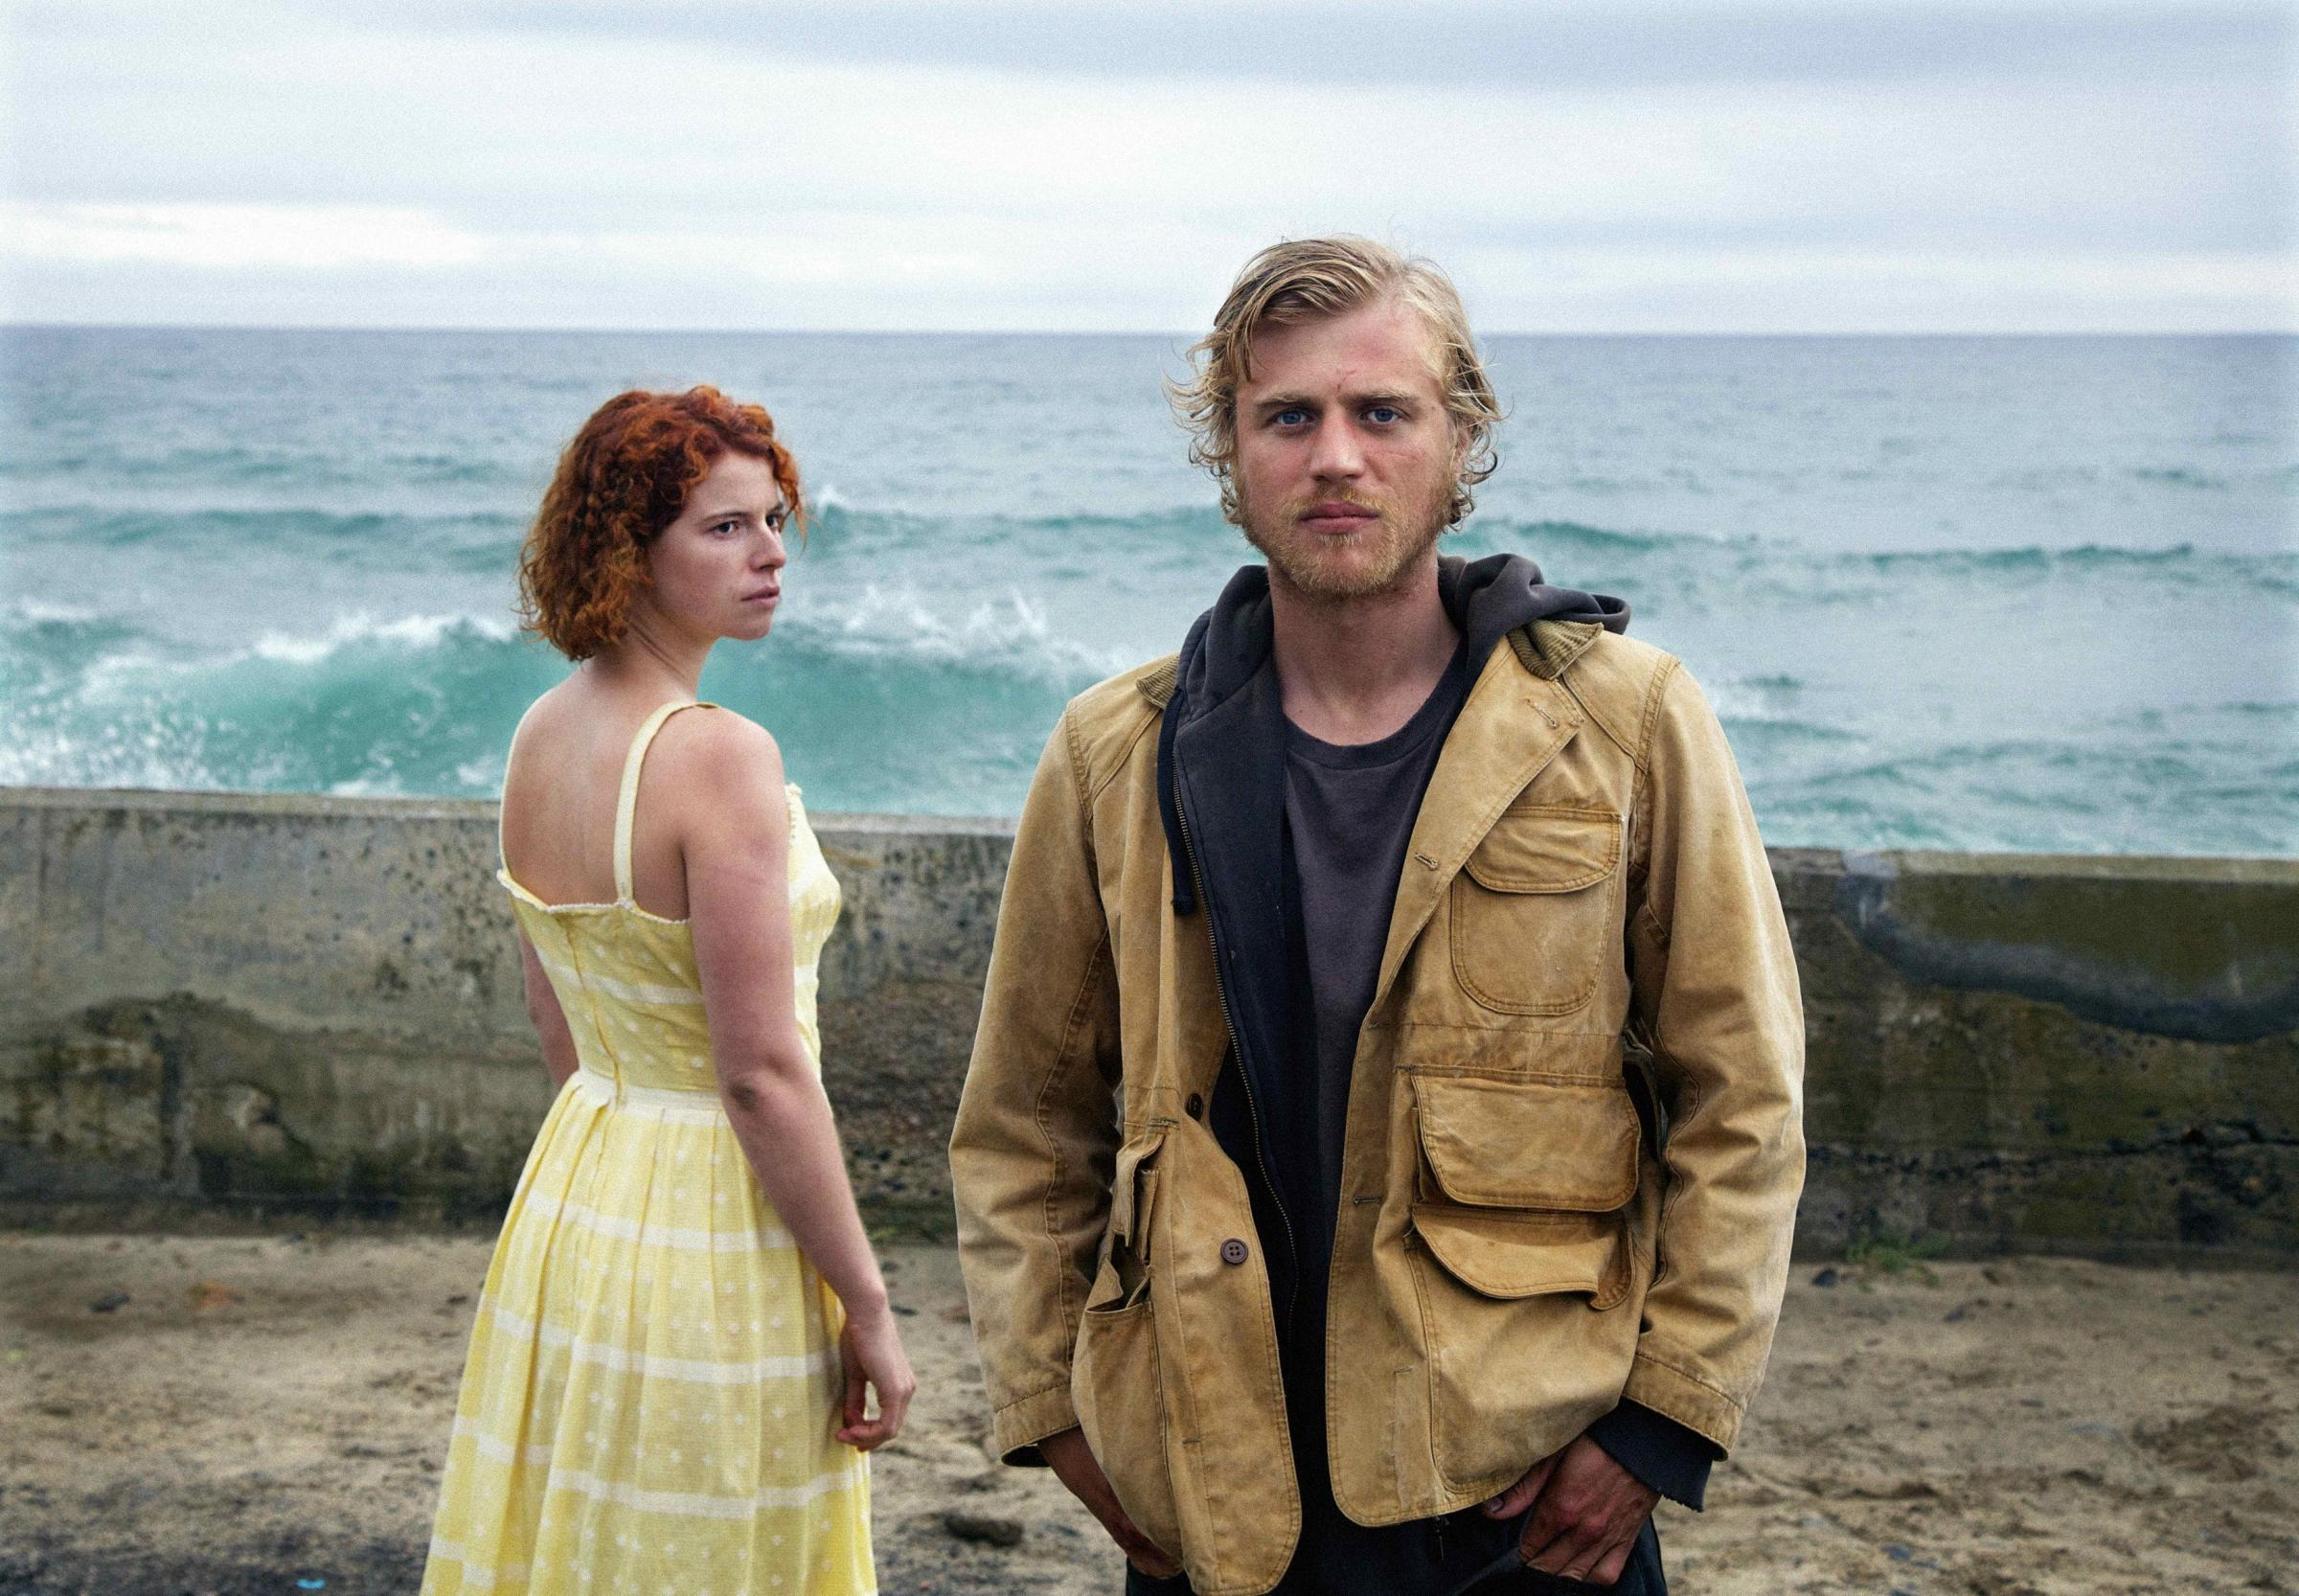 Jessie Buckley as Moll and Johnny Flynn as Pascal